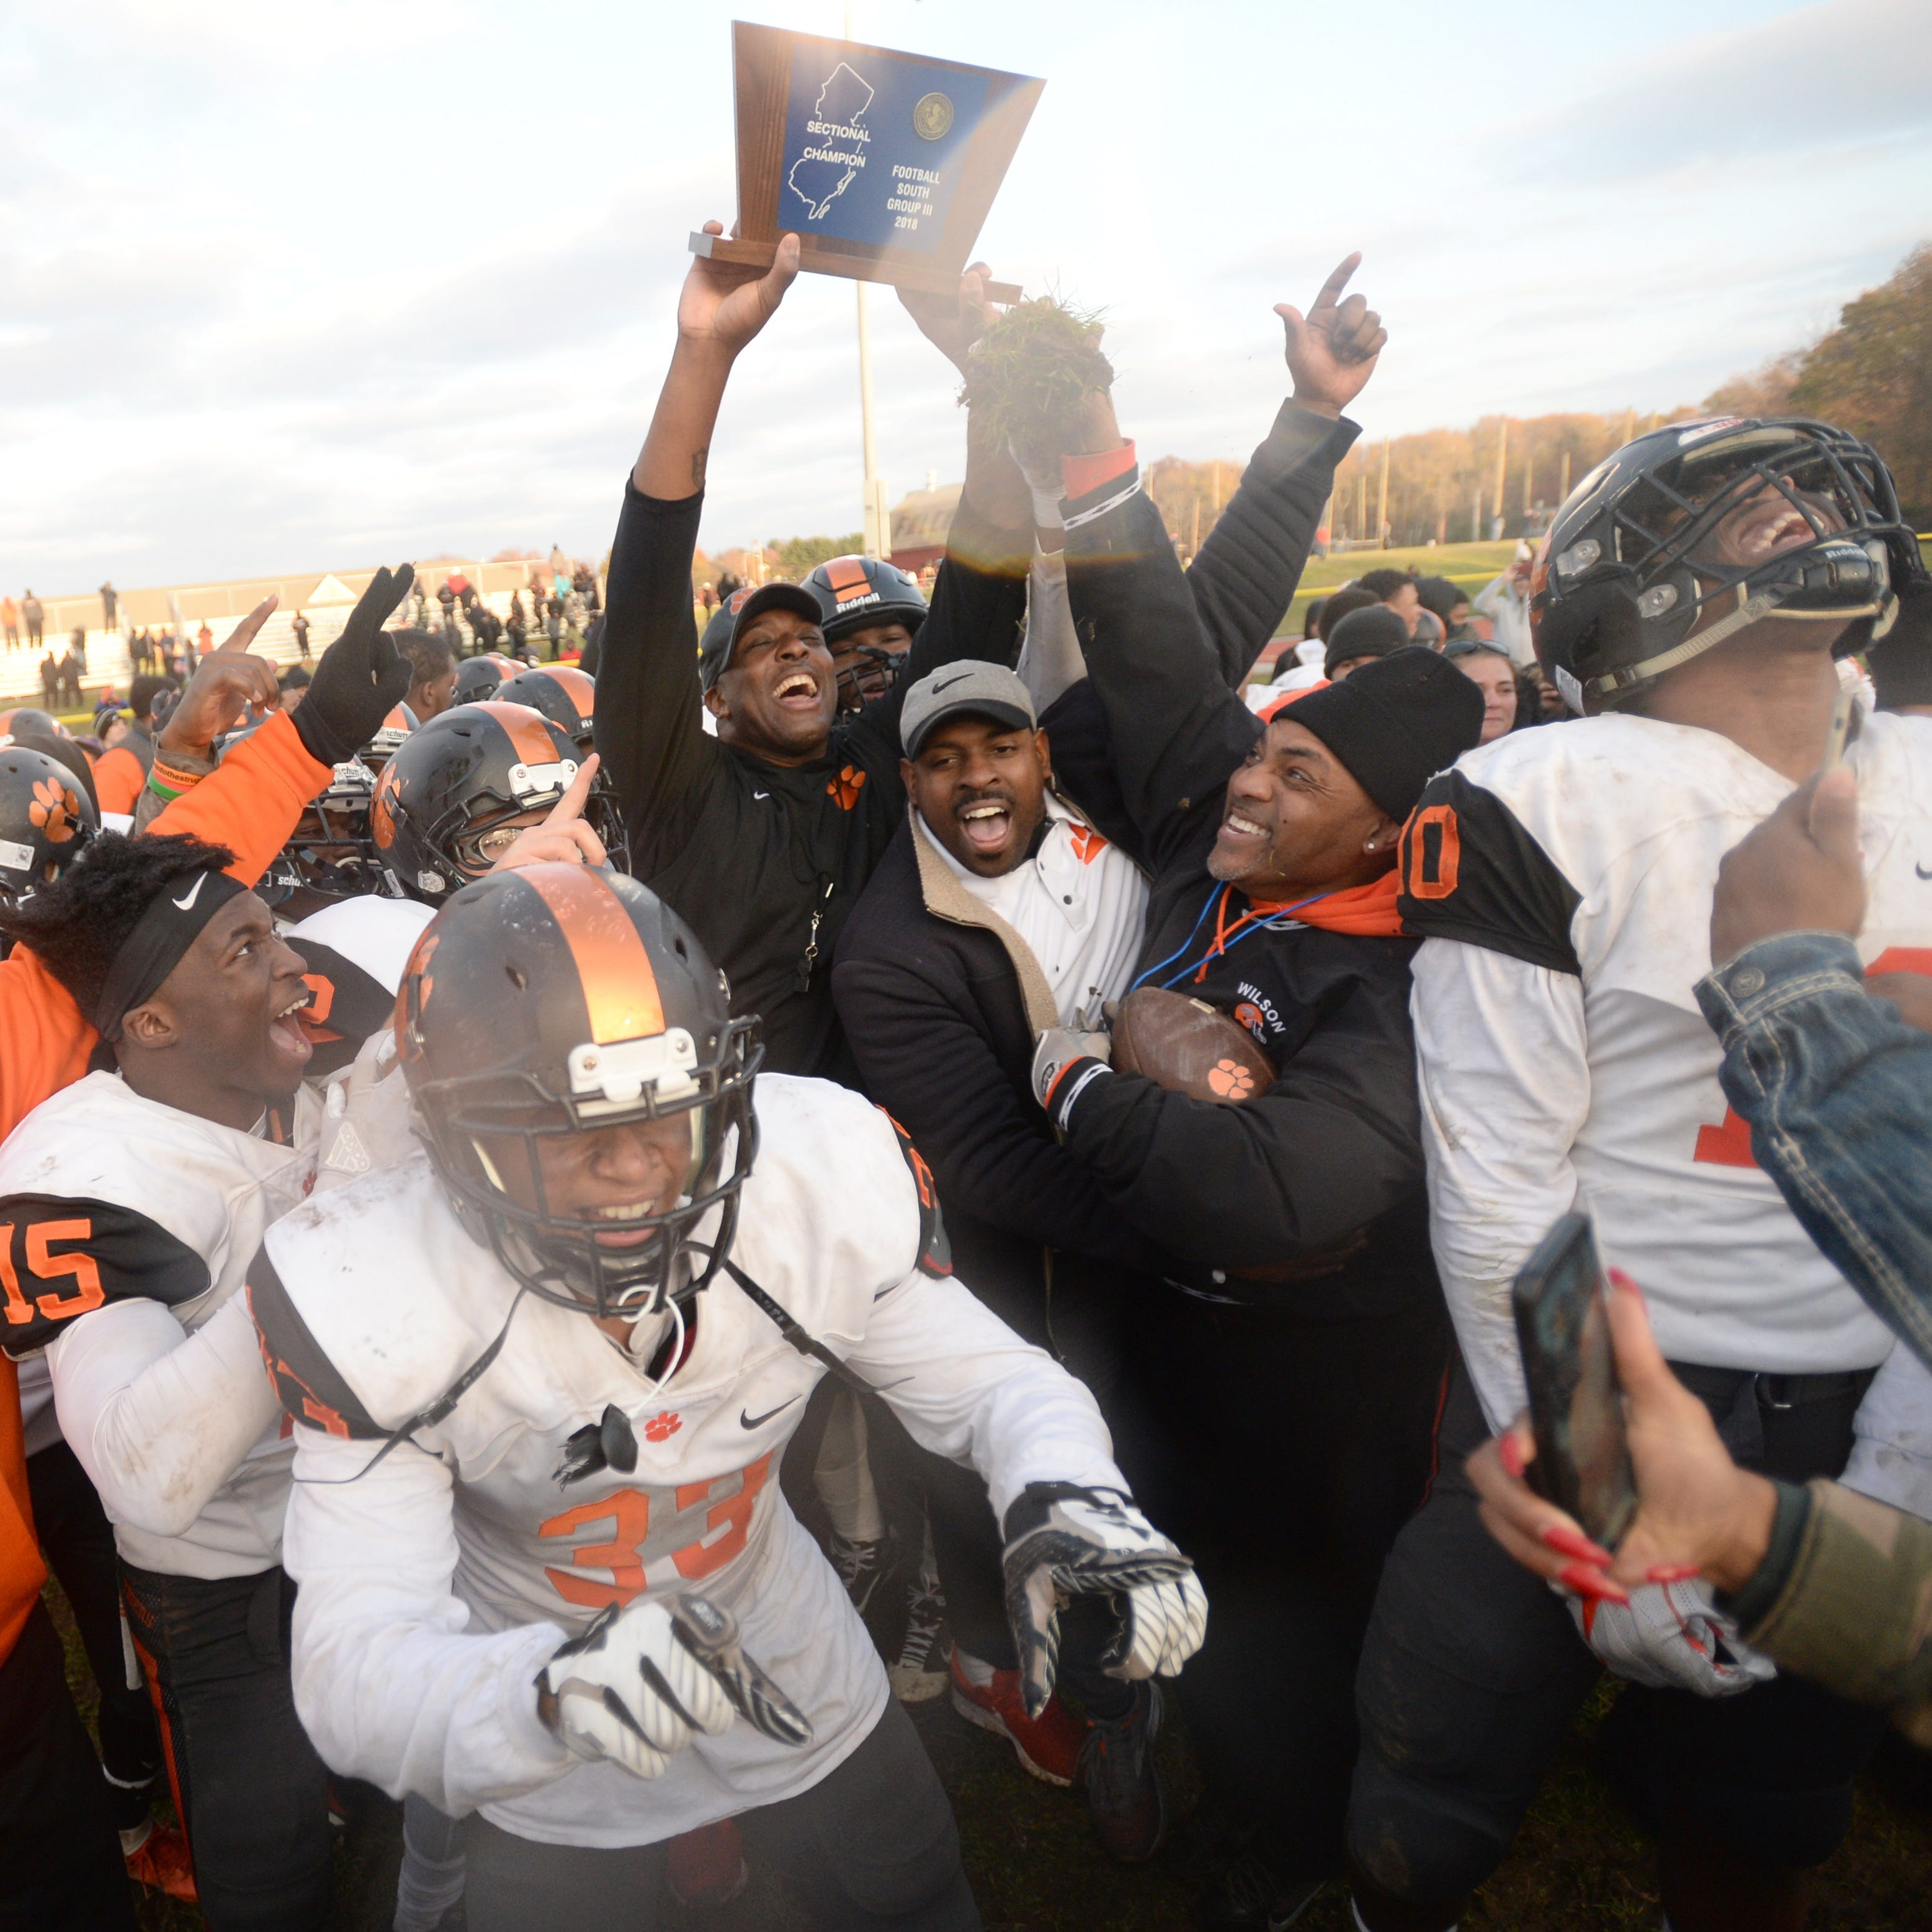 South Jersey football: Woodrow Wilson celebrates first championship since 2001